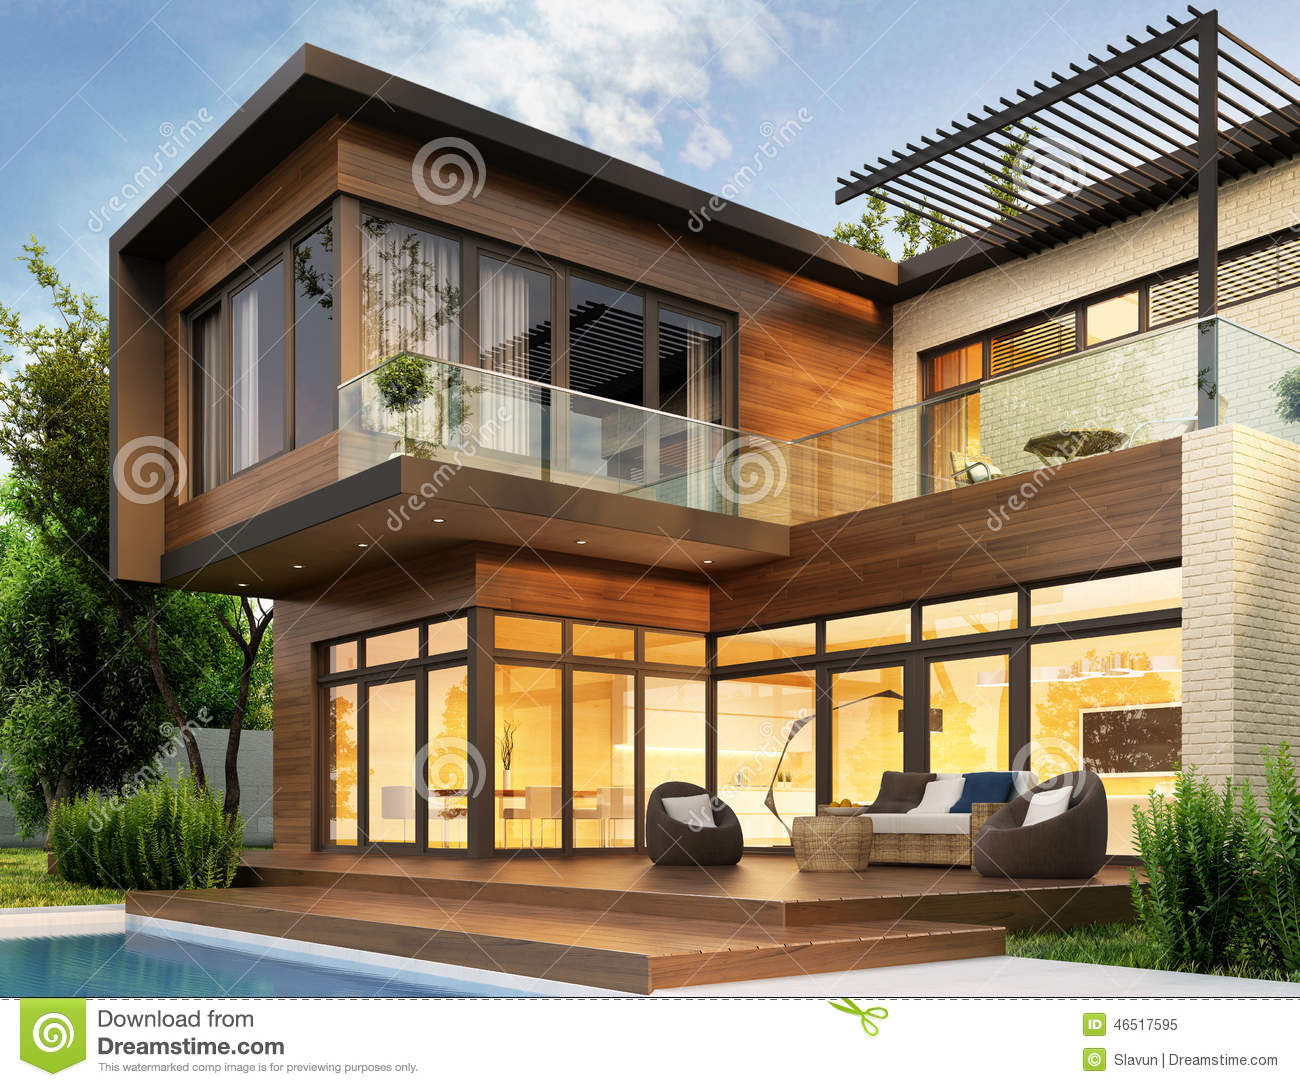 Modern House Stock Image. Image Of Architecture, Interior